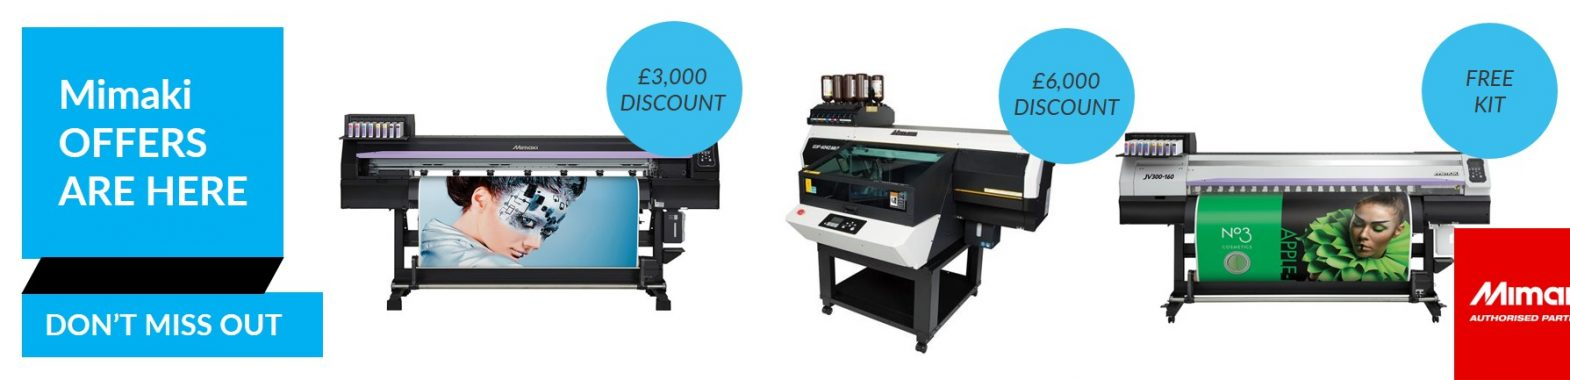 Mimaki Offers July 2019